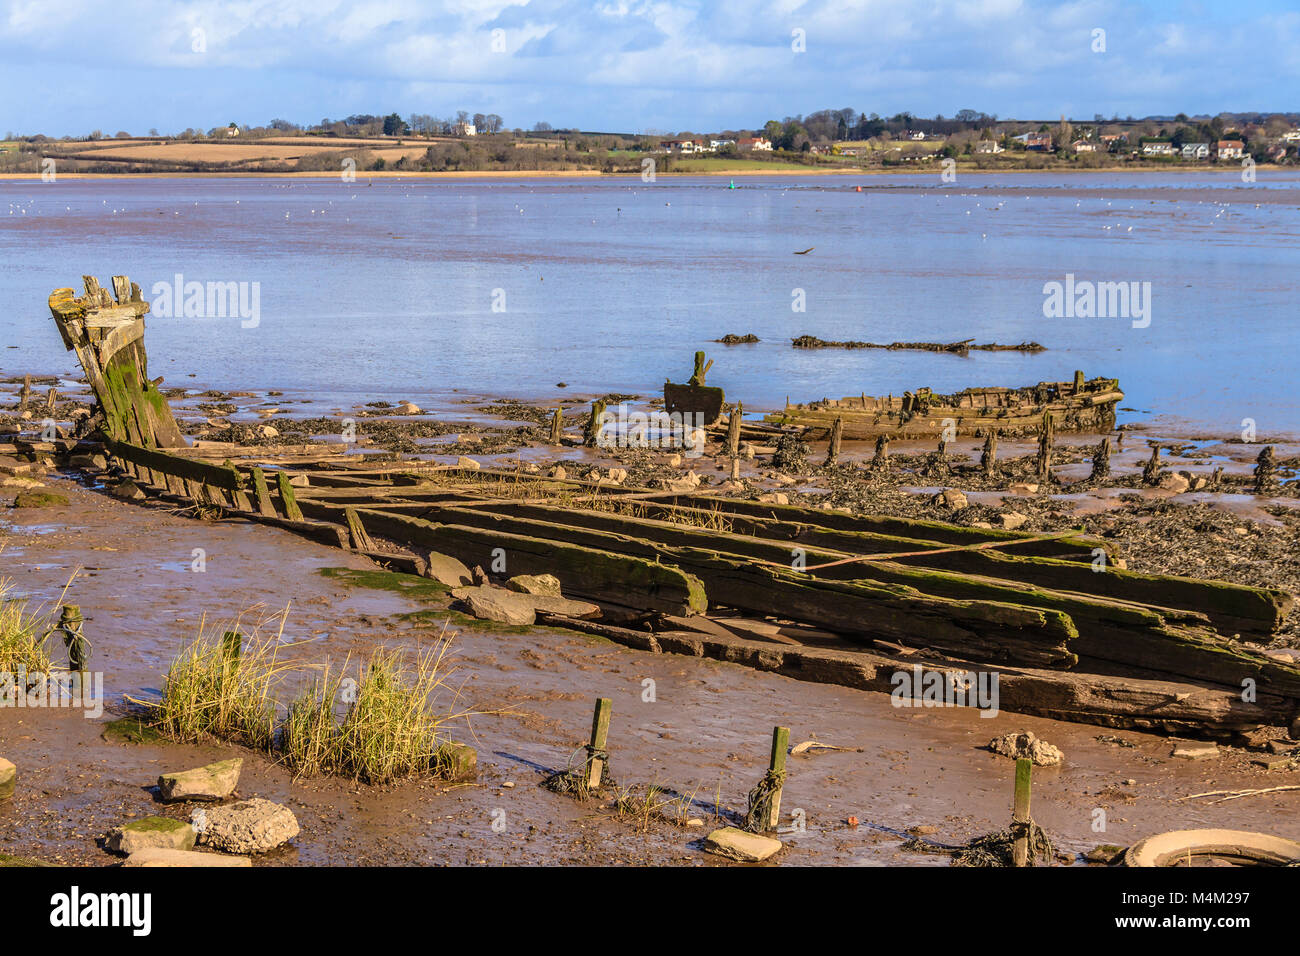 Bits of old boats visible at low tide on the Exe Estuary, Devon. - Stock Image